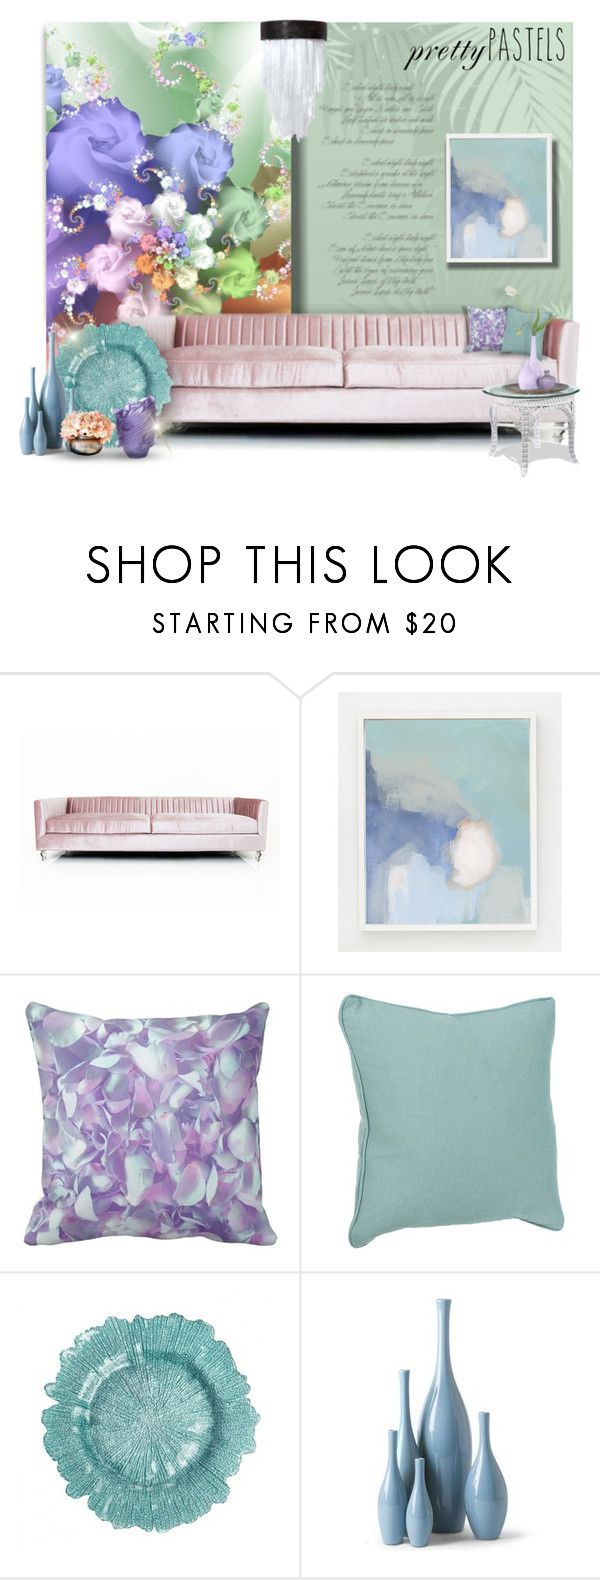 """Pastel Home Decor"" by signaturenails-dstanley ❤ liked on Polyvore featuring interior, interiors, interior design, home, home decor, interior decorating, ModShop, WALL and pasteldecor"